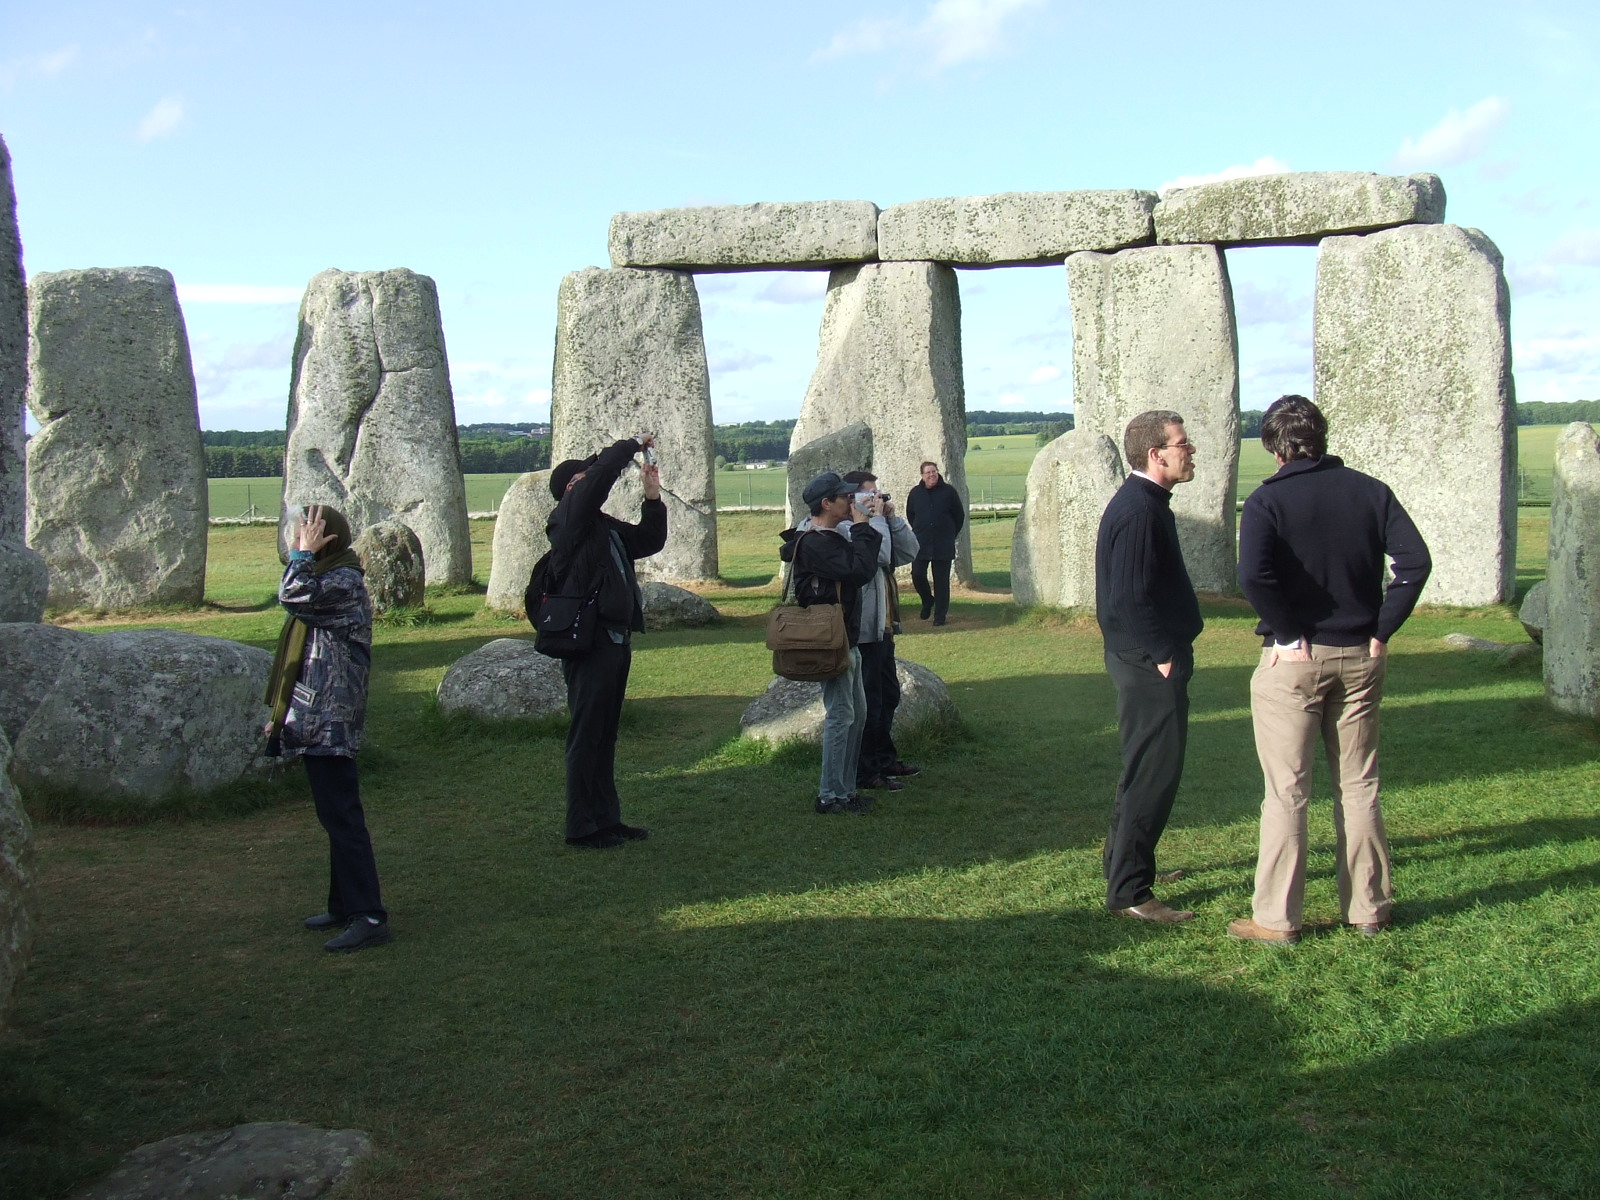 Award Winning Salisbury Guided Tours.  Bespoke personalised tours of Stonehenge from London, Bath or Salisbury